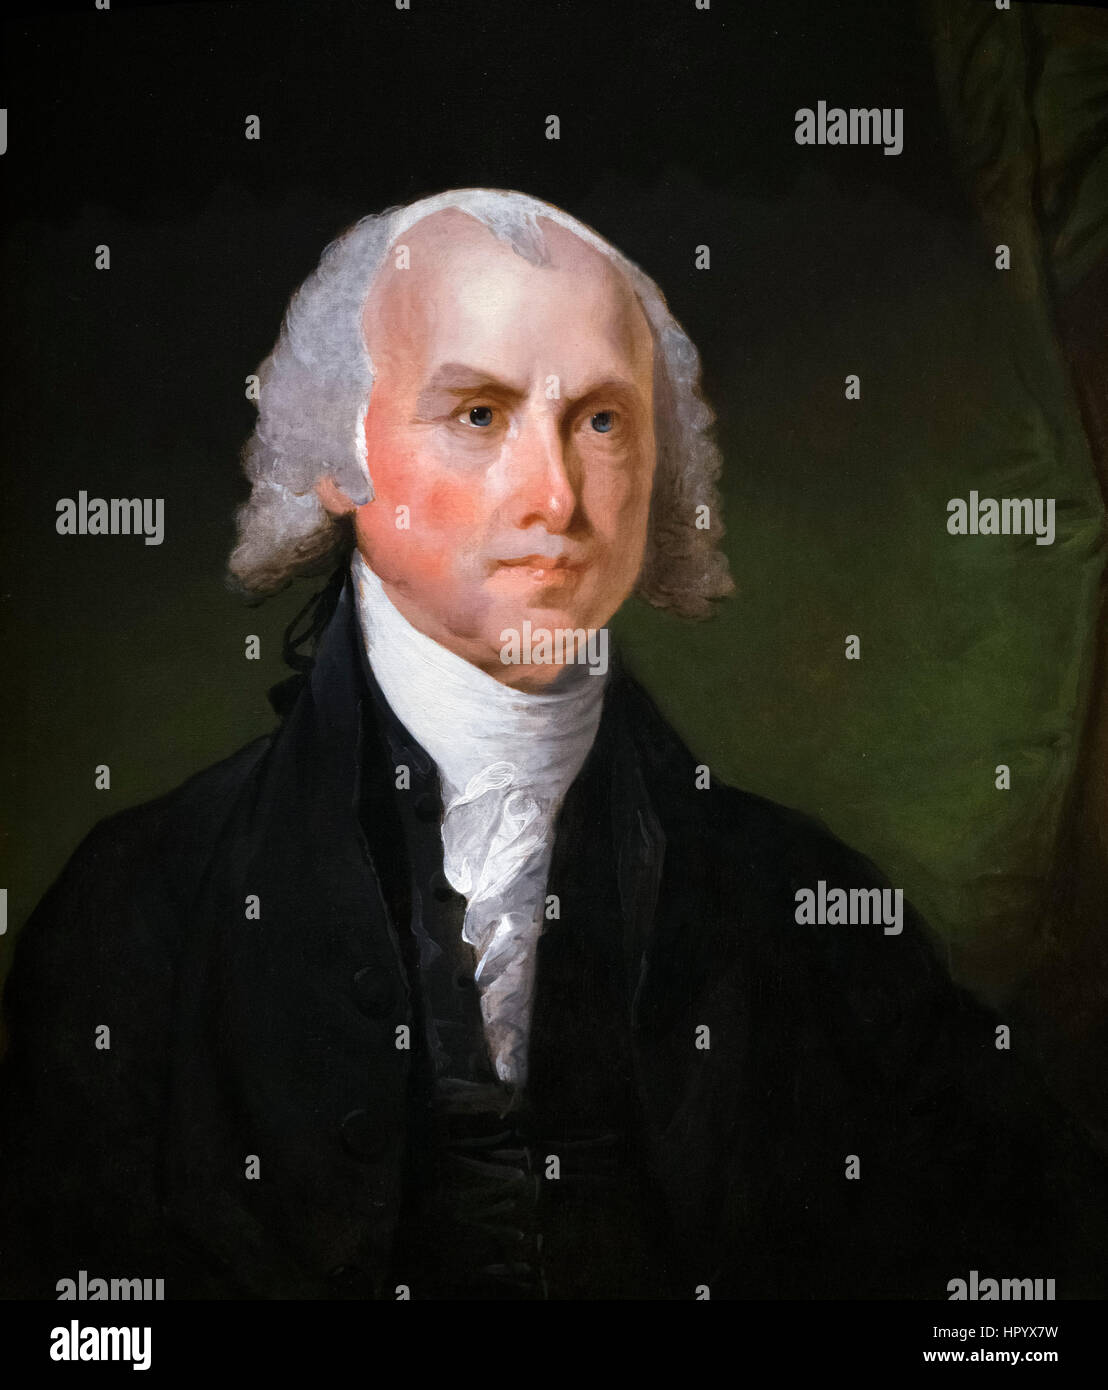 James Madison. Portrait of the 4th US President, James Madison (1751-1836) by Gilbert Stuart, oil on wood, c.1821 - Stock Image